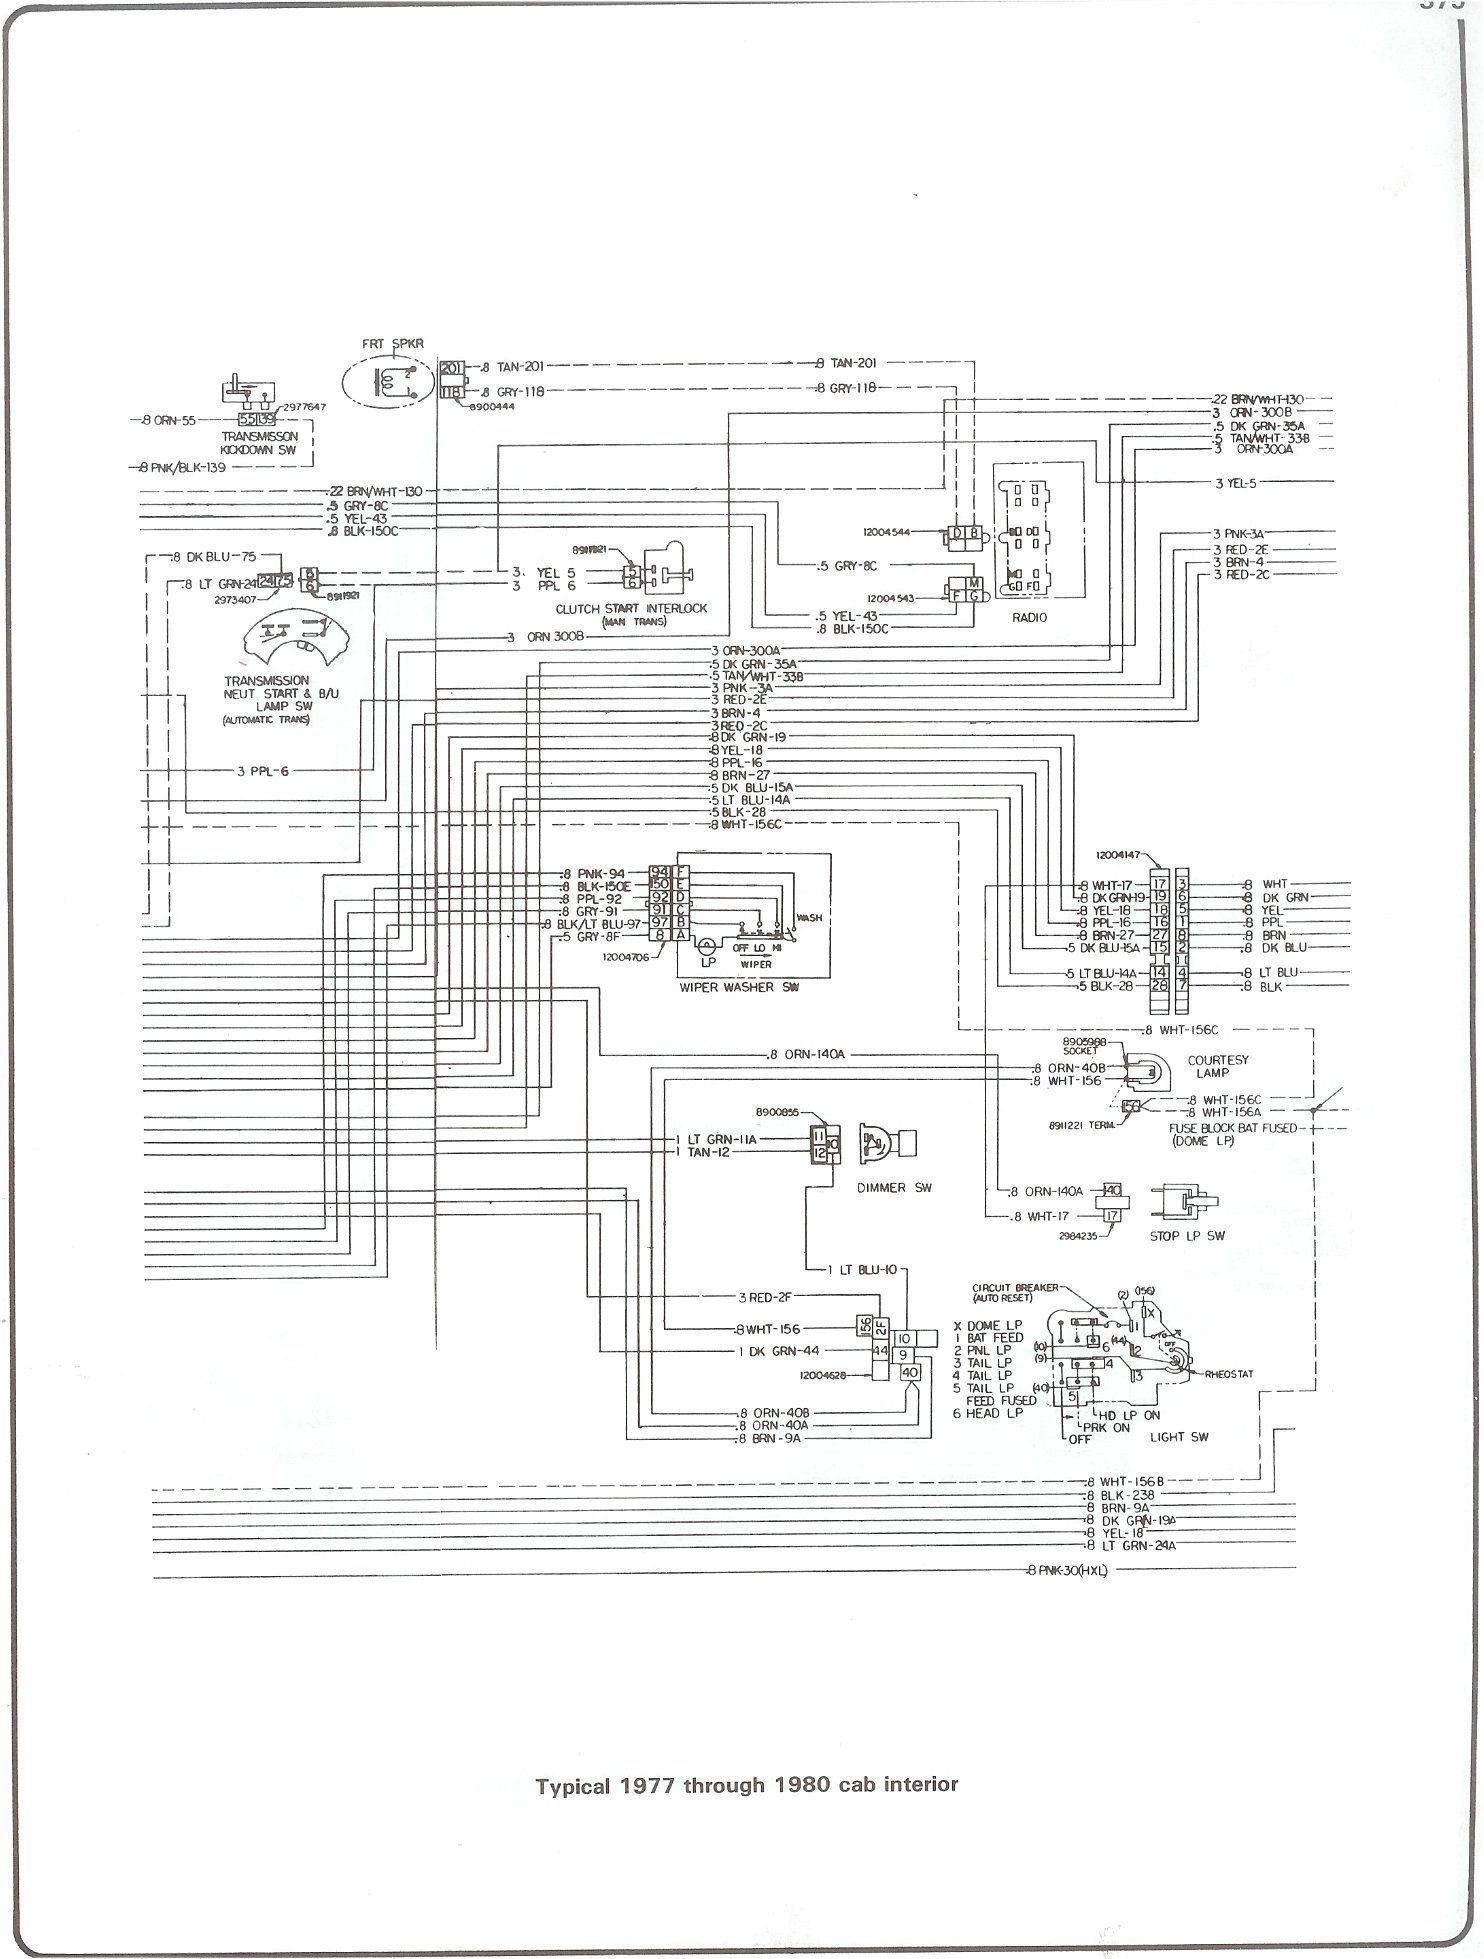 1984 C10 Wiring Harness Connectors Simple Diagram 68 Chevy Complete 73 87 Diagrams Truck